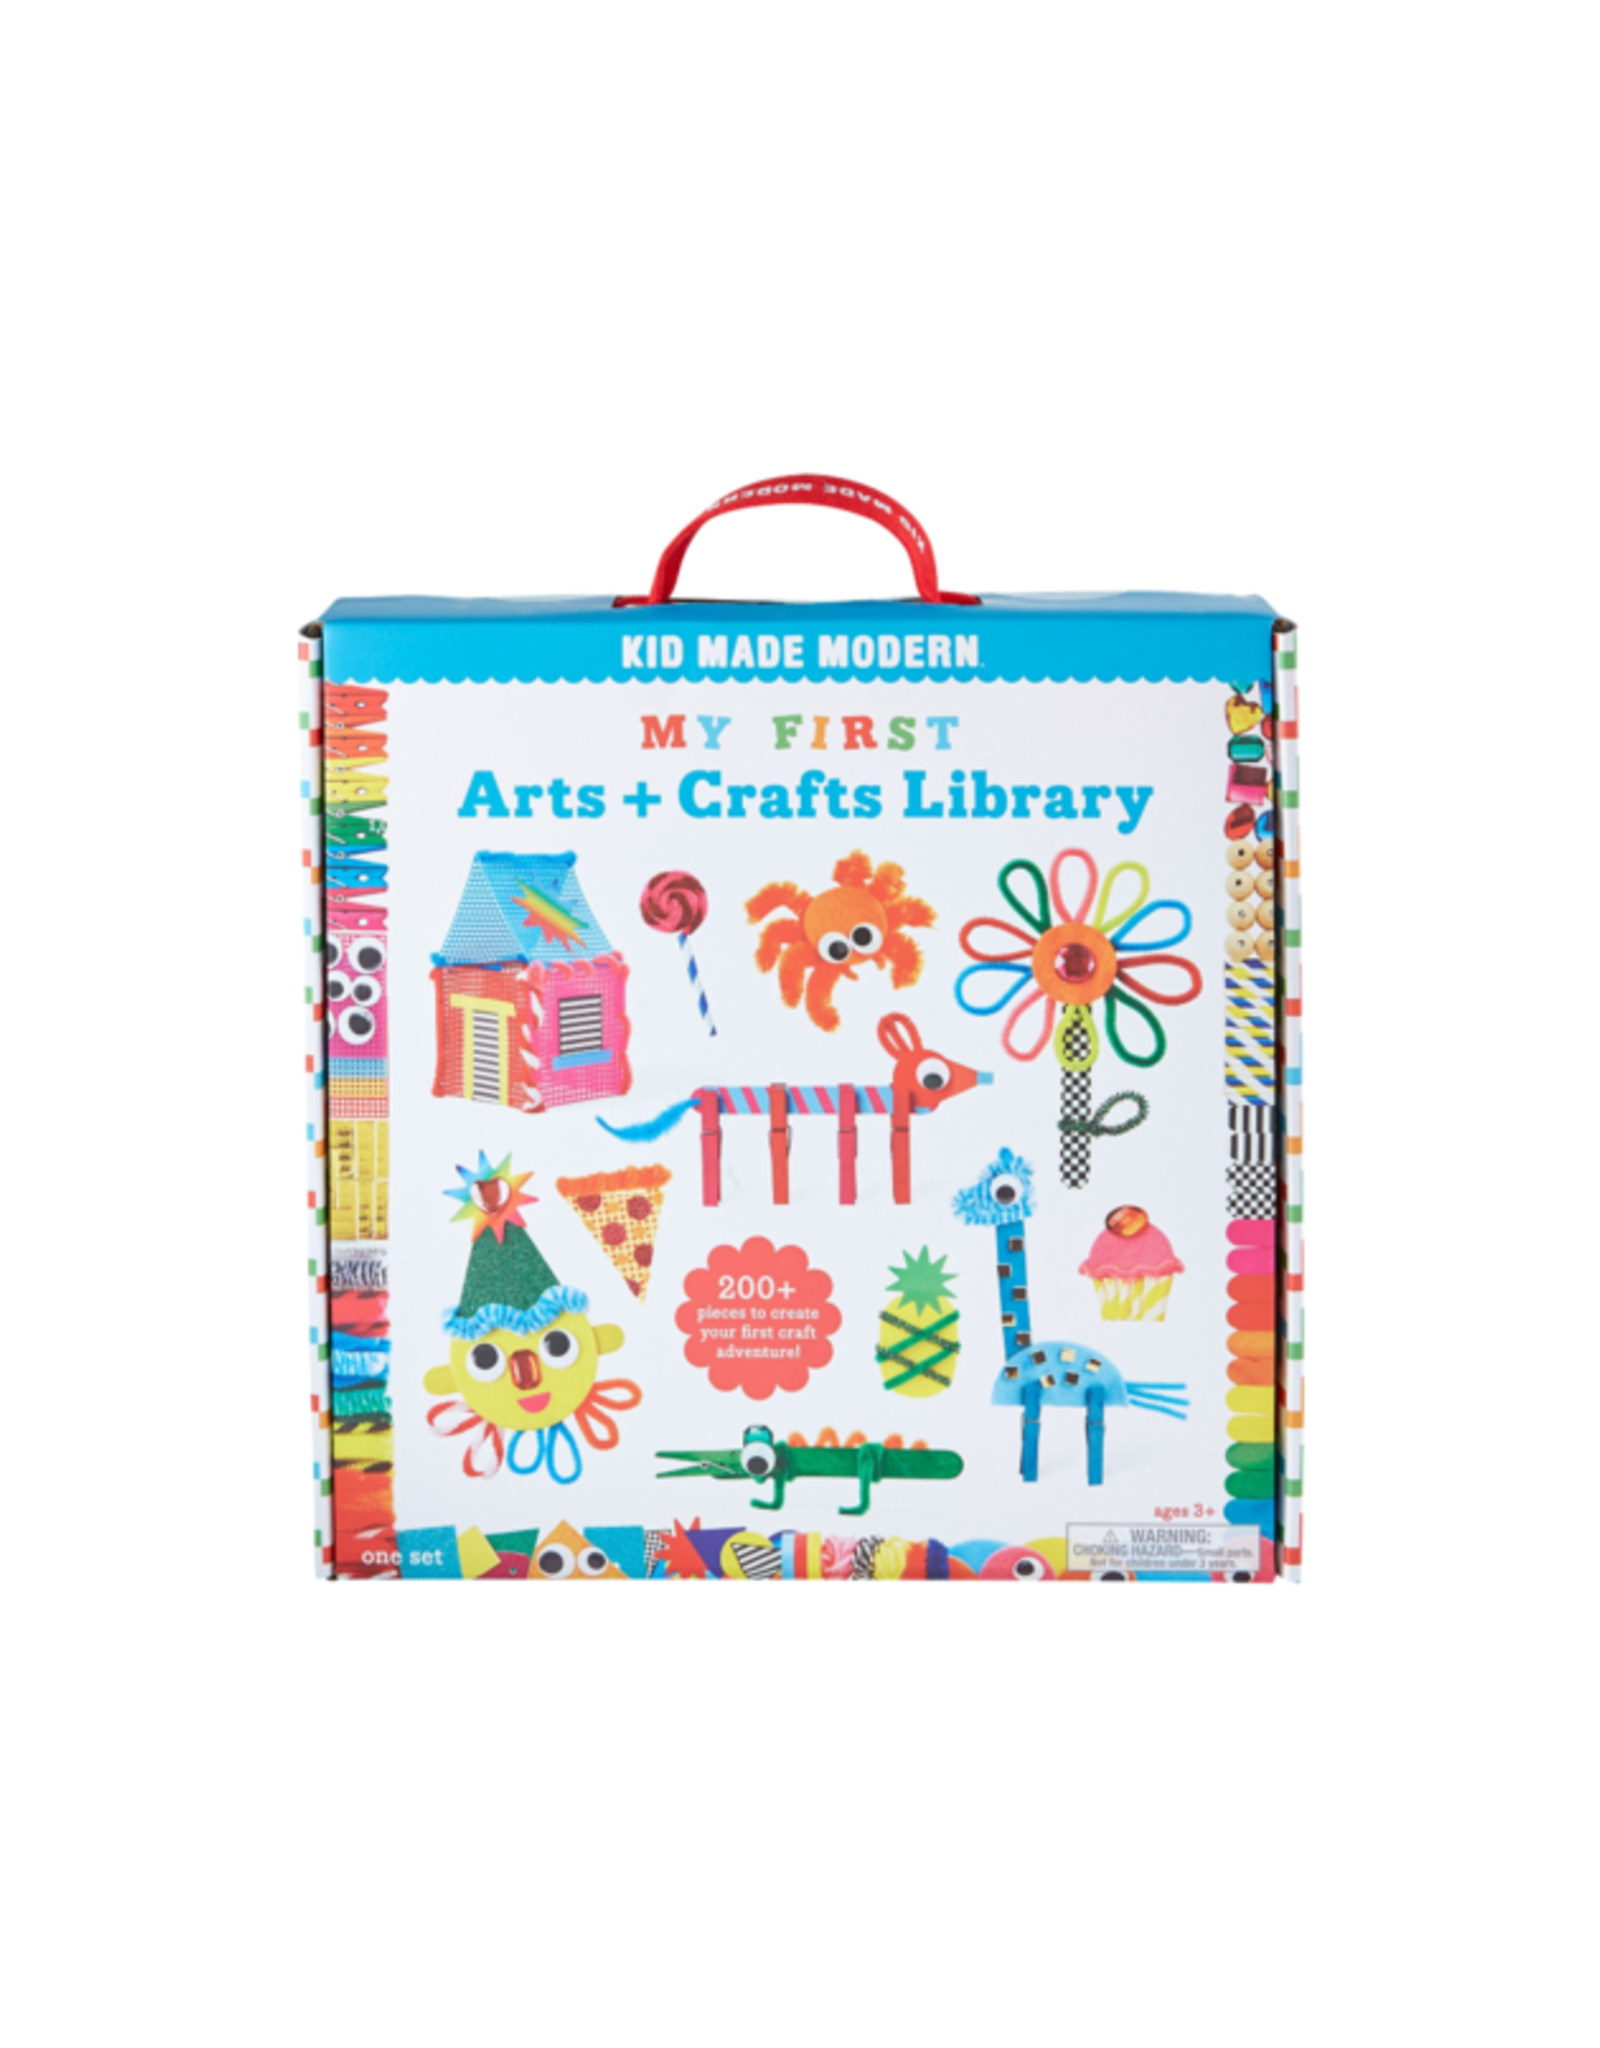 Kid Made Modern My First Arts & Crafts Library